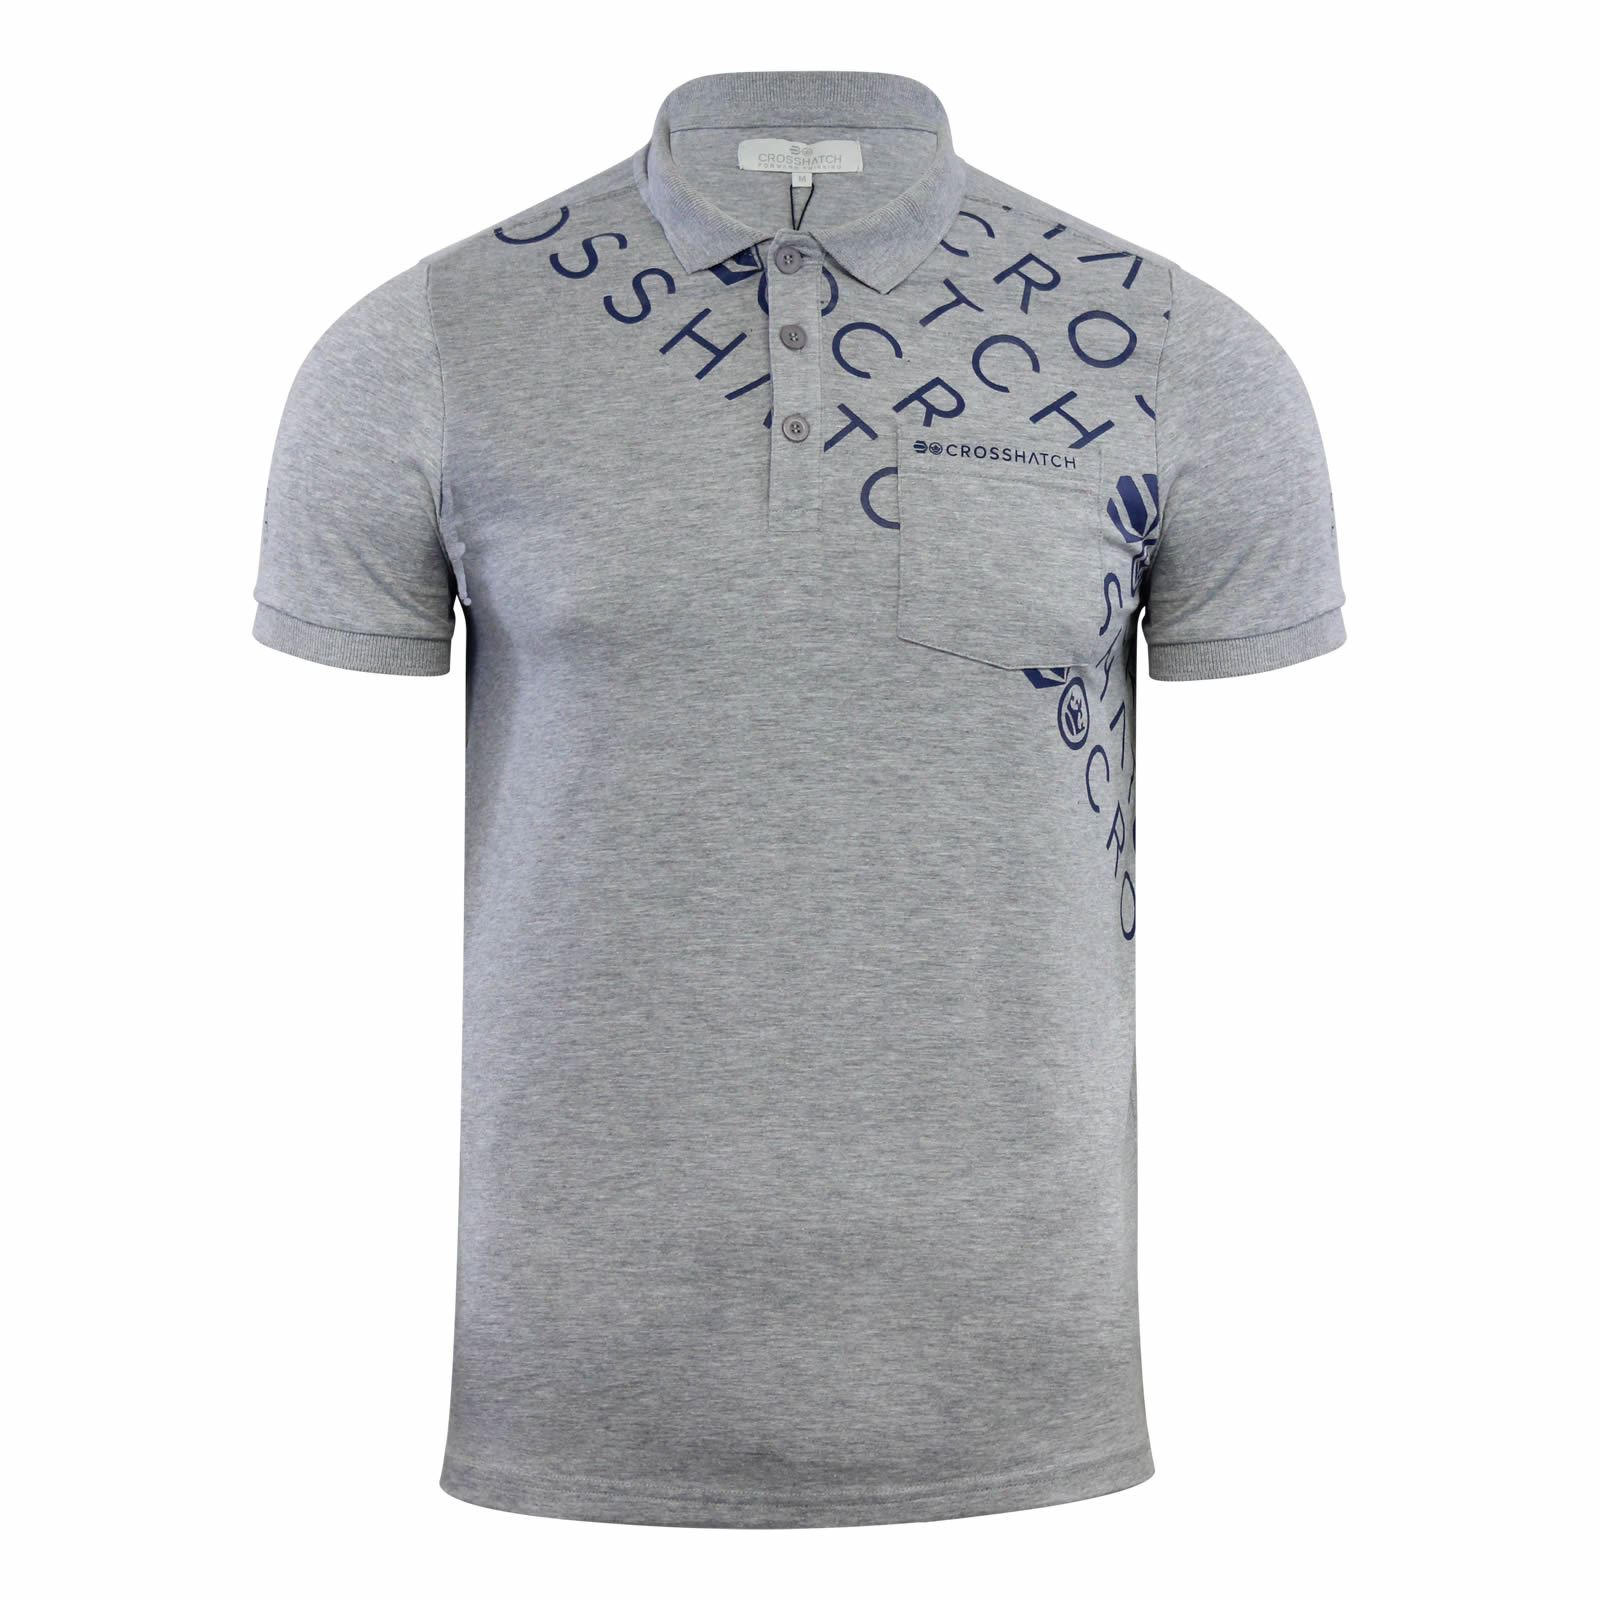 Crosshatch-Mens-Polo-T-Shirt-Pique-Polo-Cotton-Collared-Short-Sleeve-T-Shirt thumbnail 55